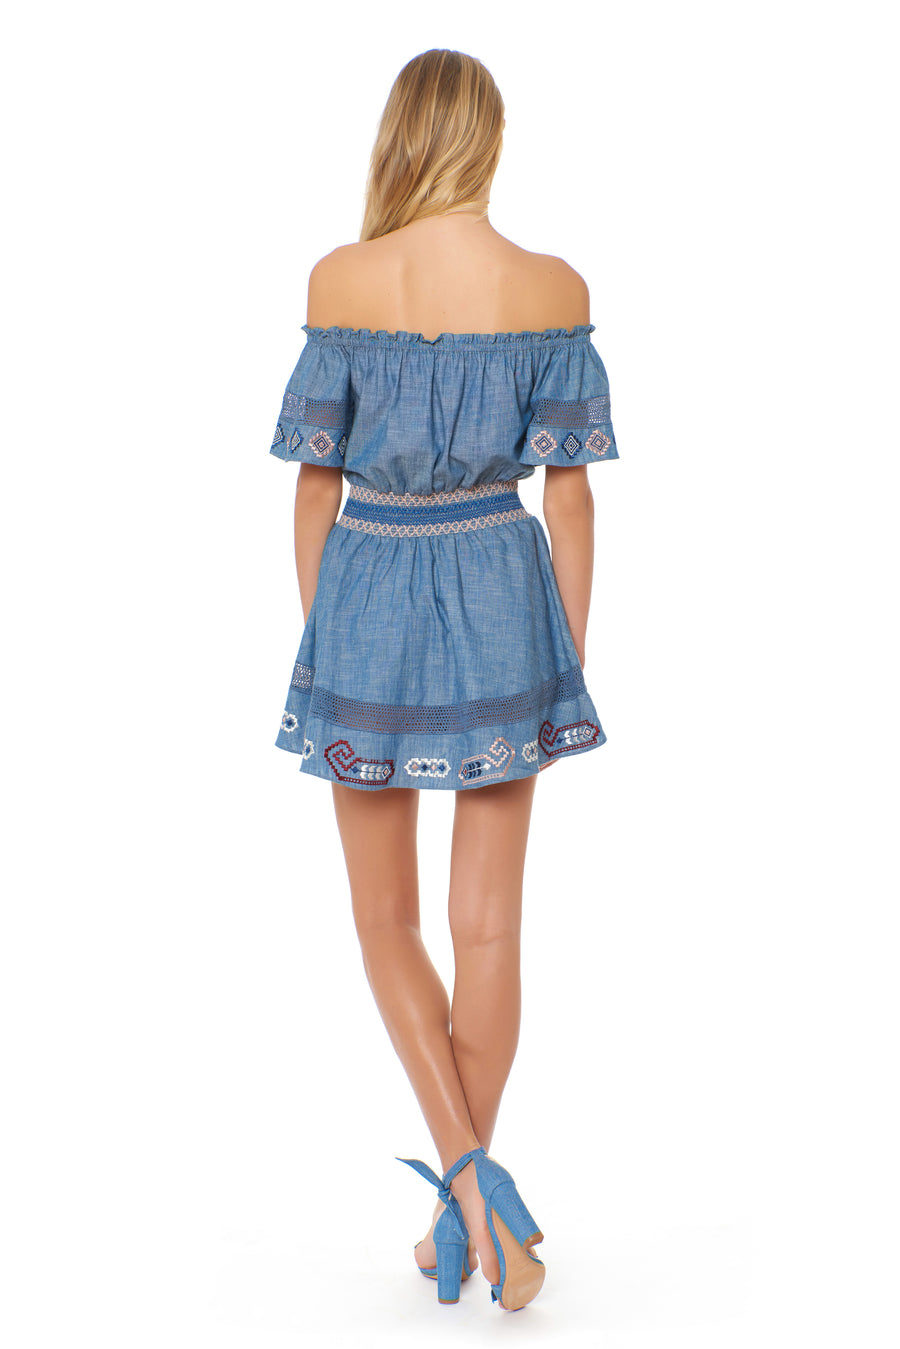 Melissa Dress - Chambray